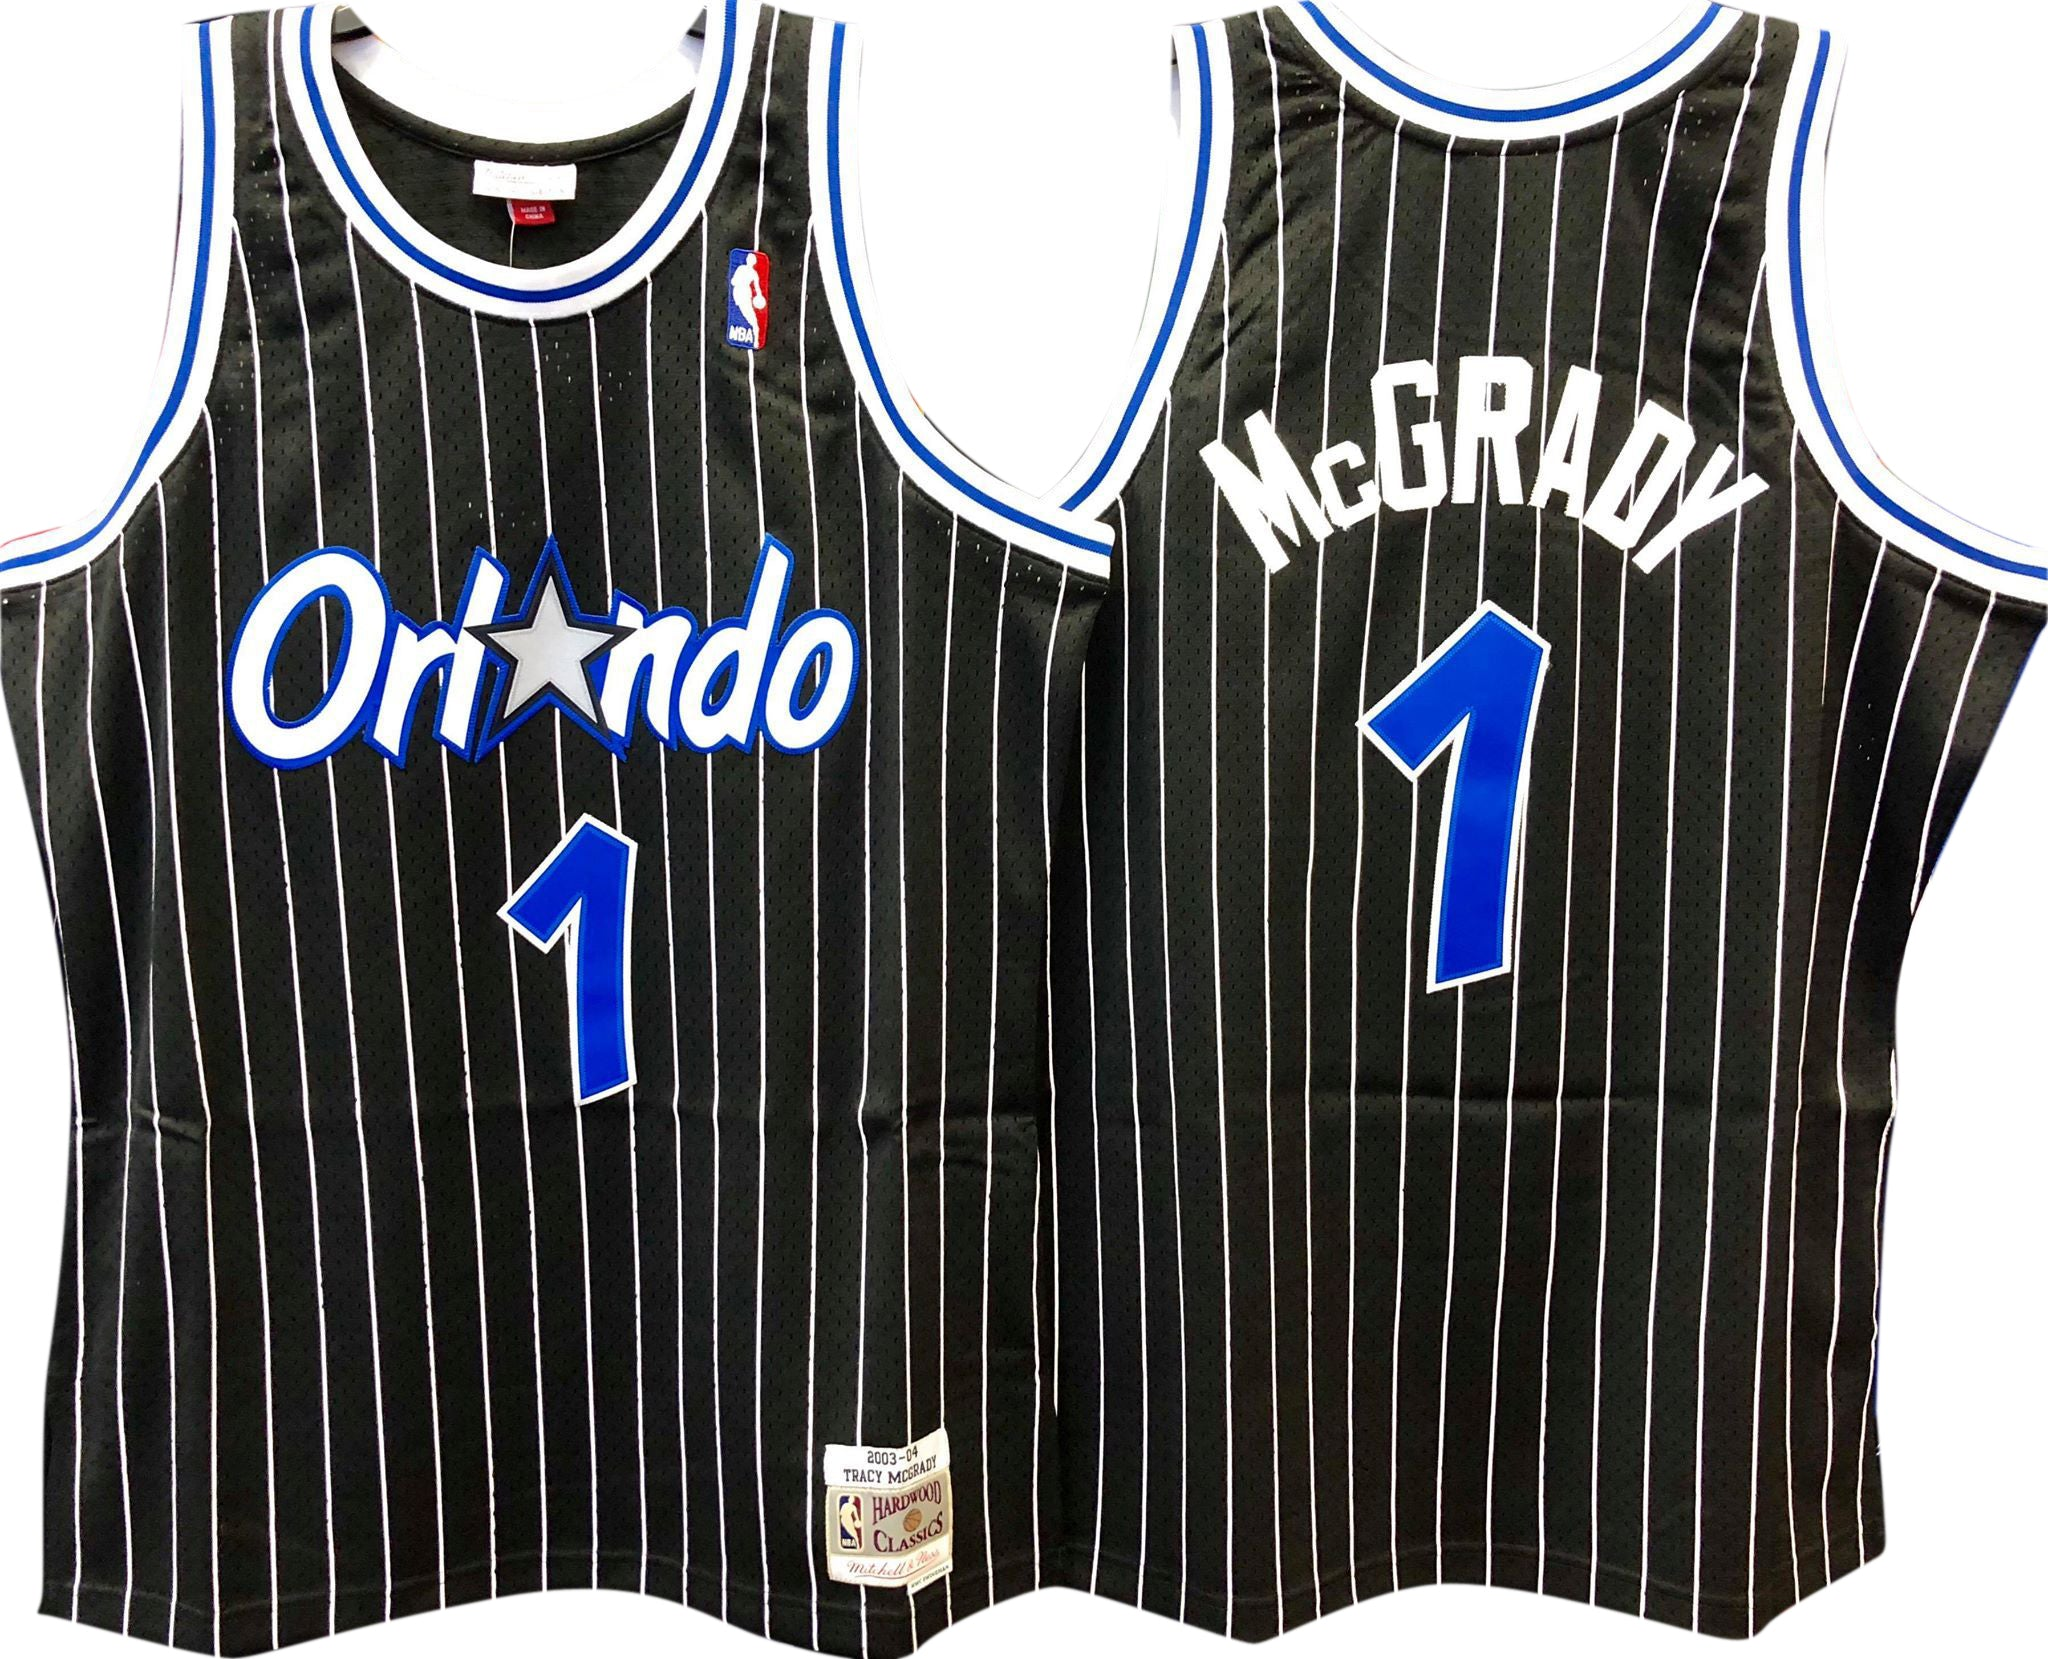 864fde68b7a3 closeout shaquille oneal 94 95 orlando magic mitchell ness authentic black  jersey 40 738e6 784af  canada tracy mcgrady orlando magic nba hardwood  classics ...